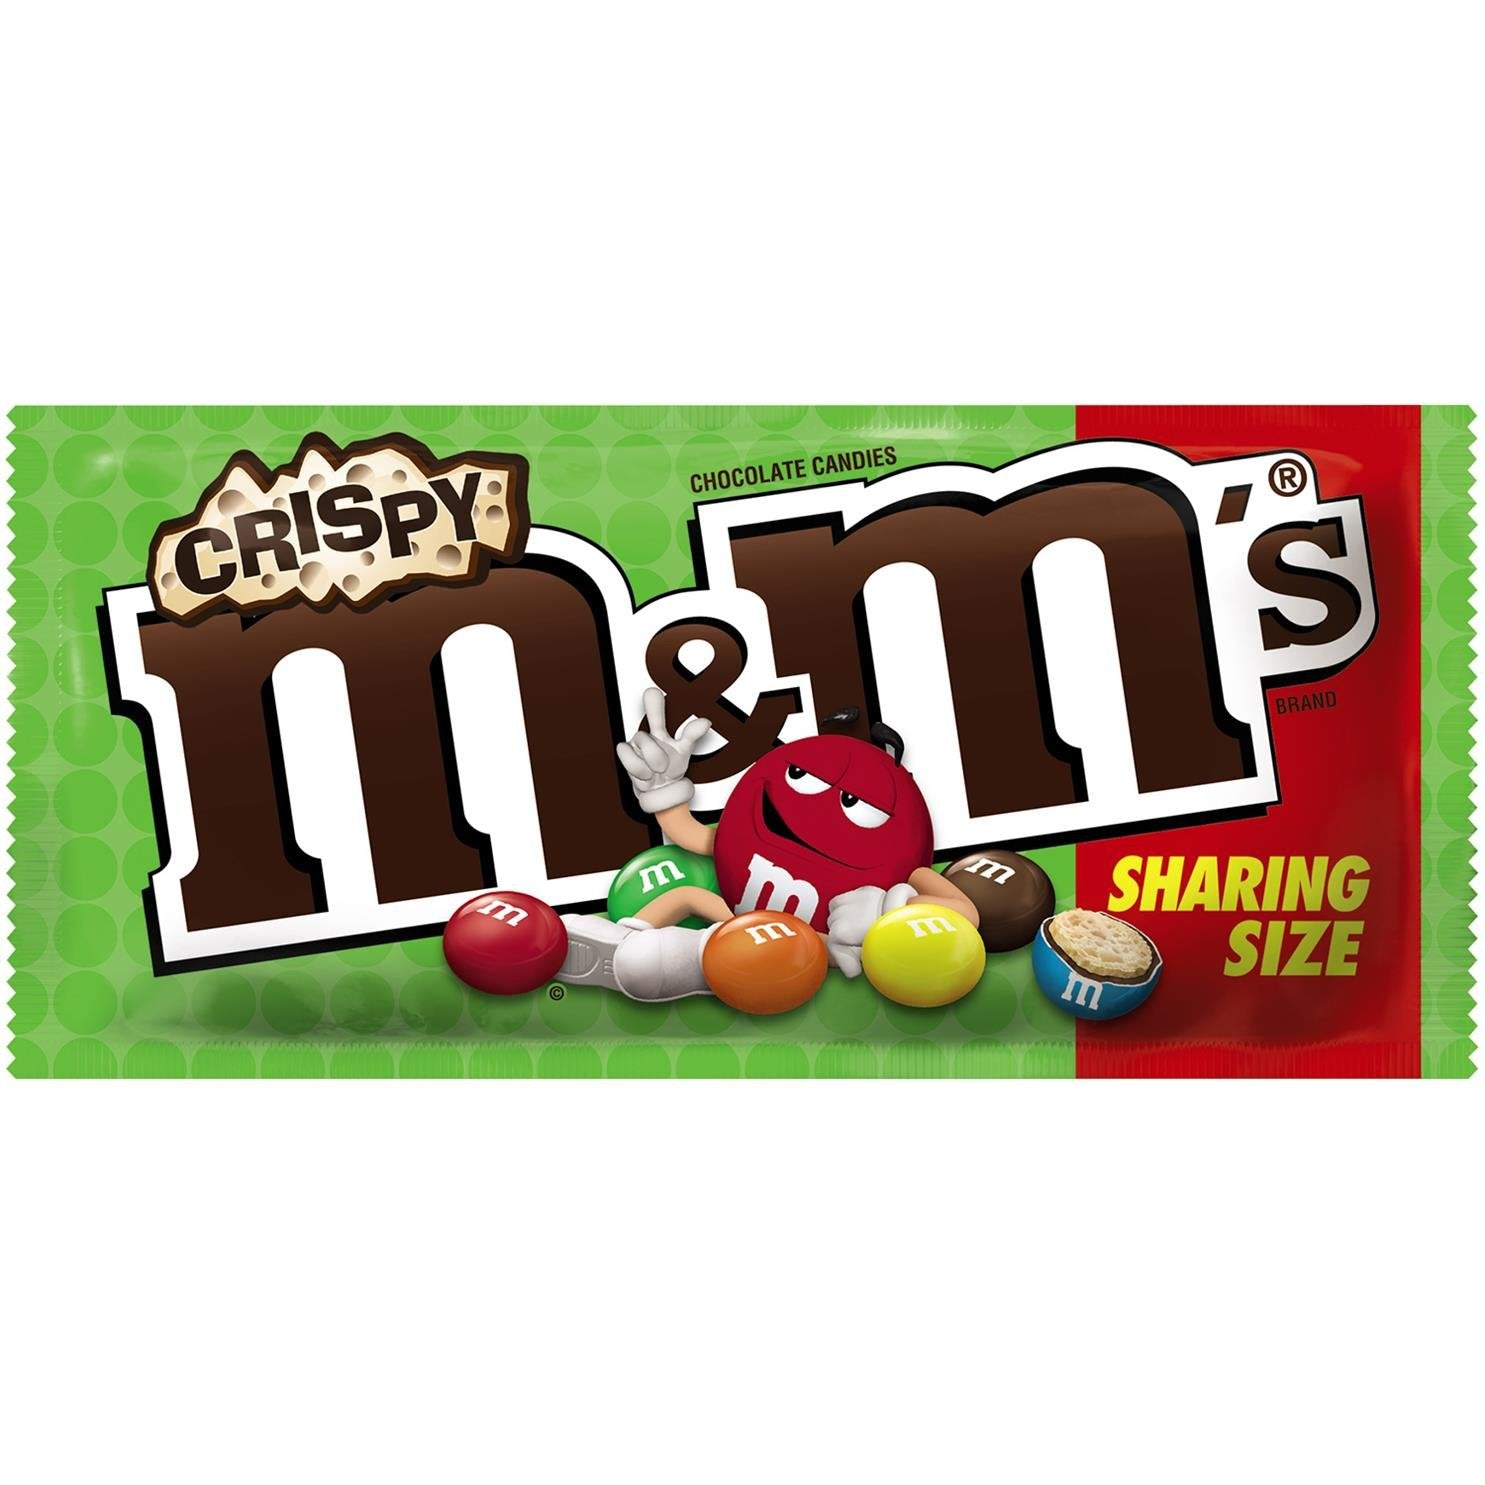 M&M's Crispy USA (Share Size) 2.83oz - A Taste of the States